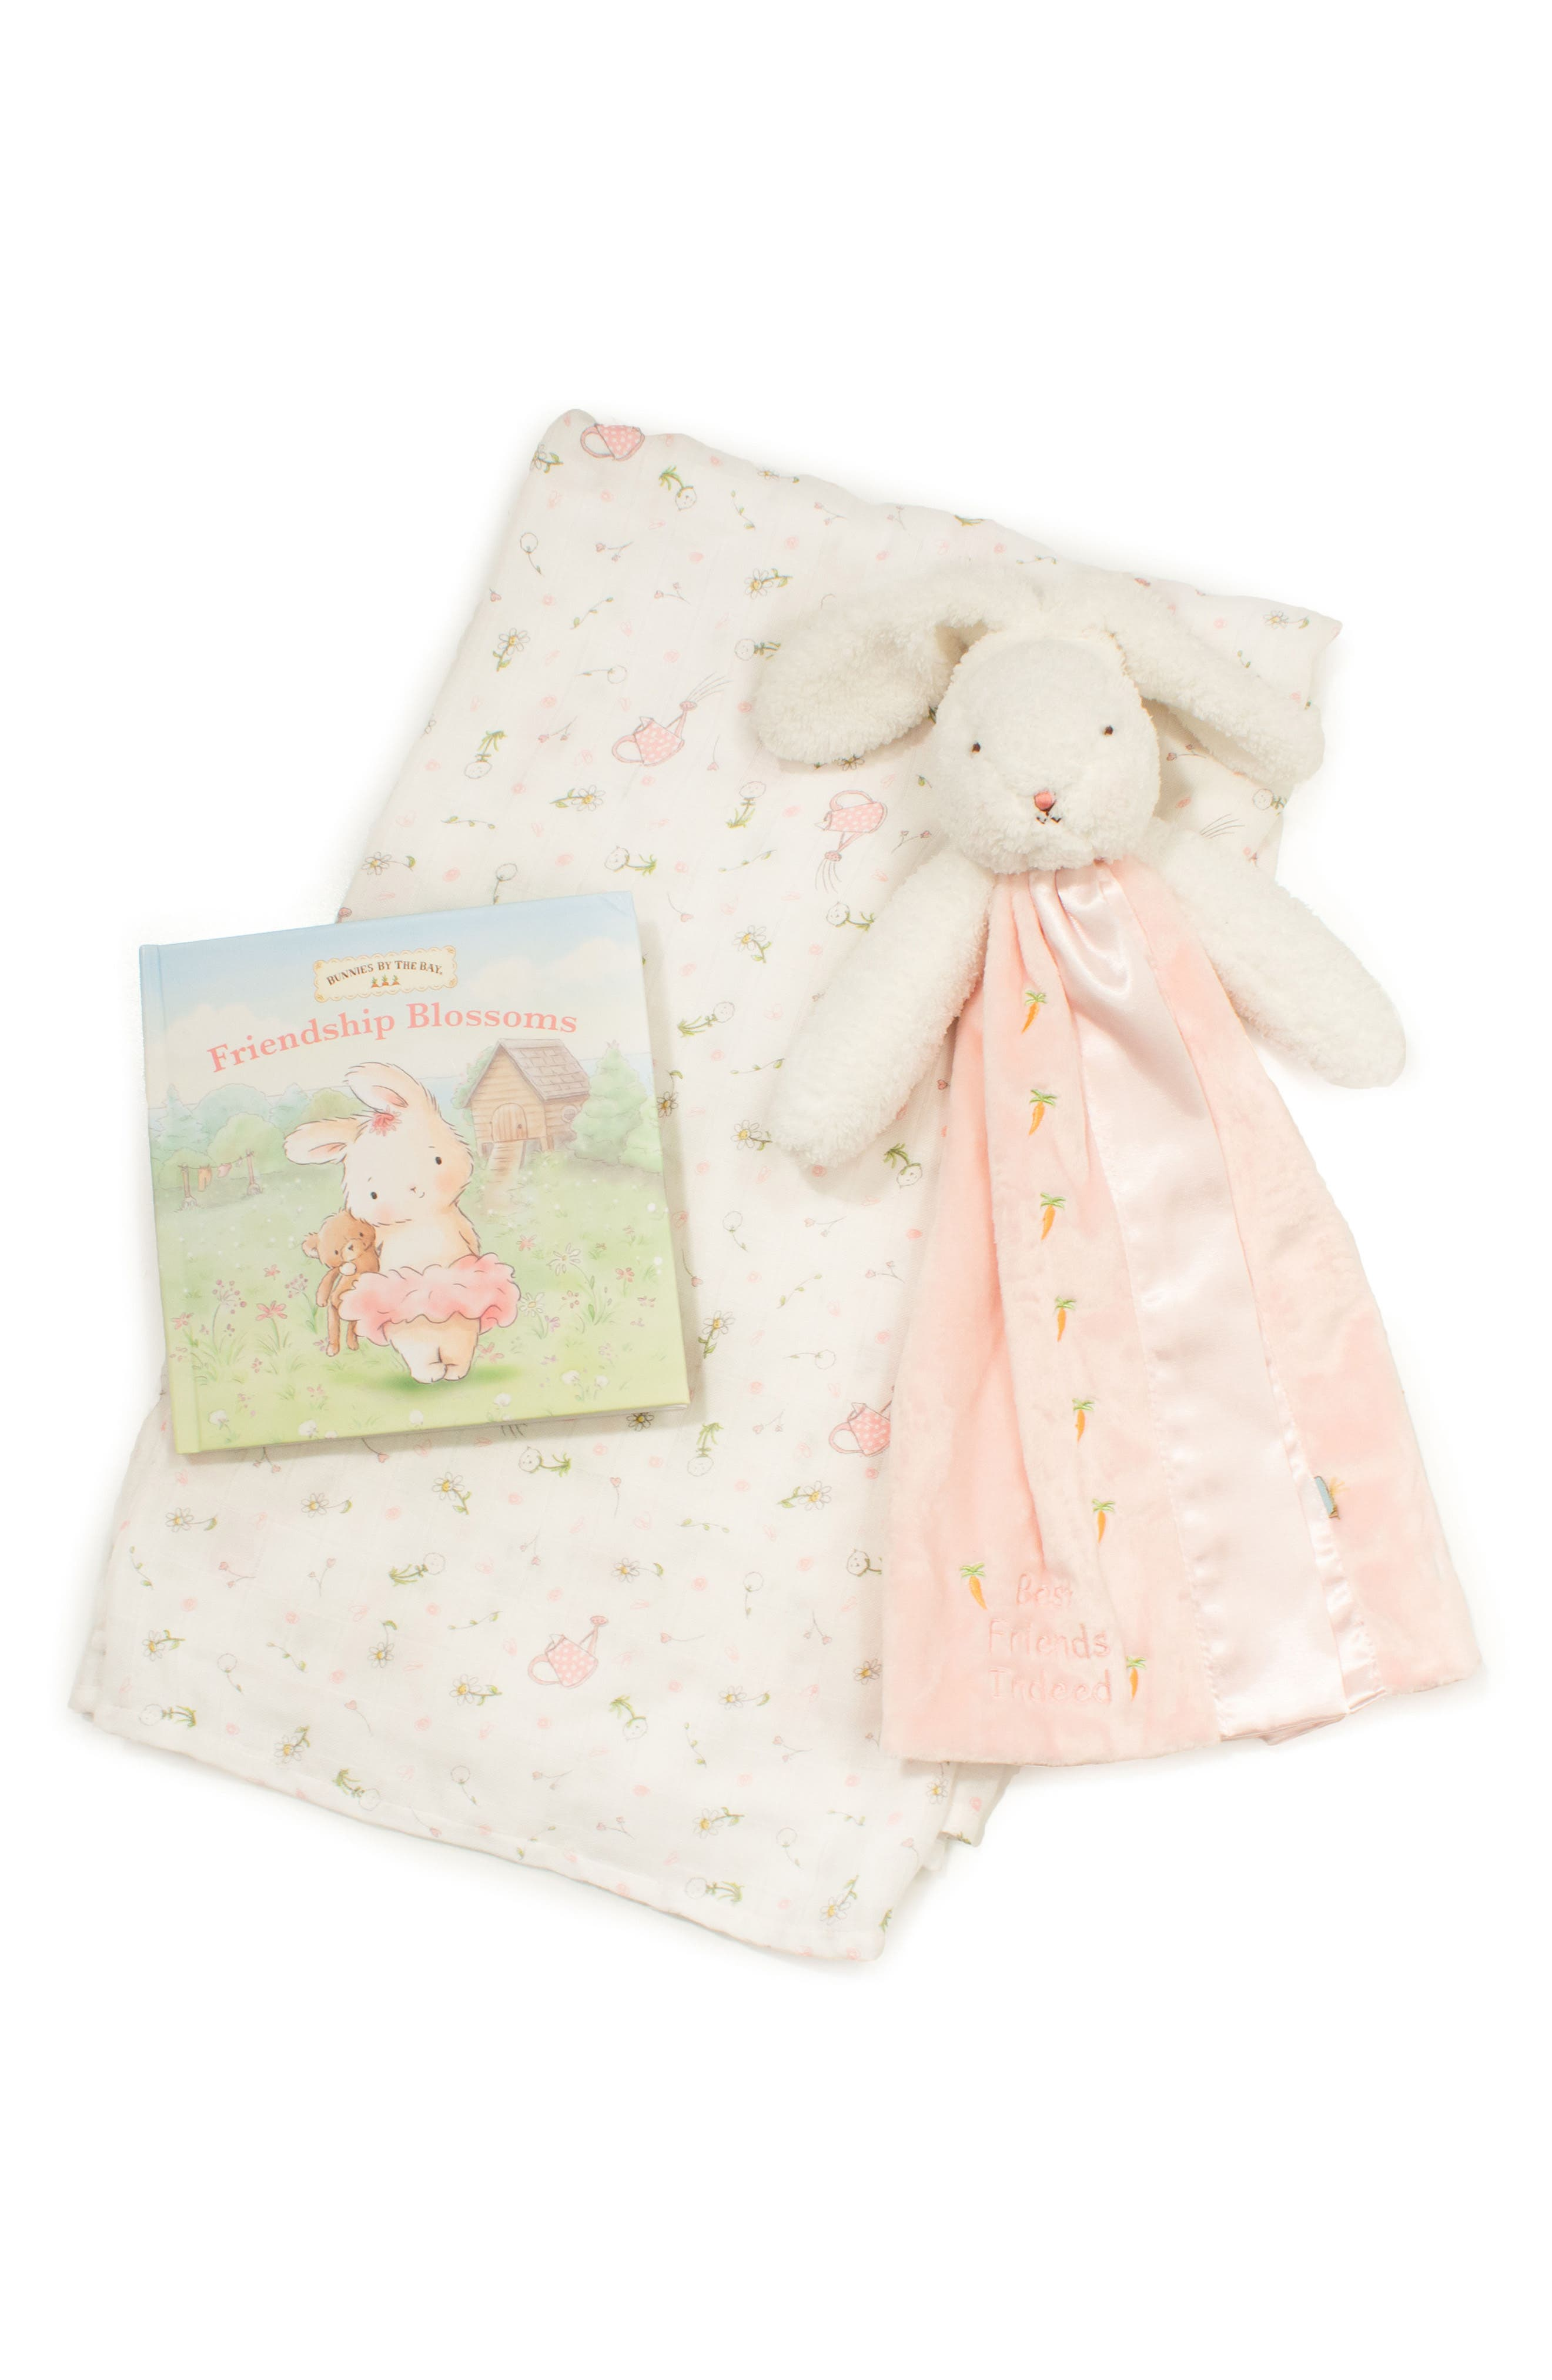 Blossom Read Me Another One 3-Piece Gift Set,                         Main,                         color, Blossom Pink